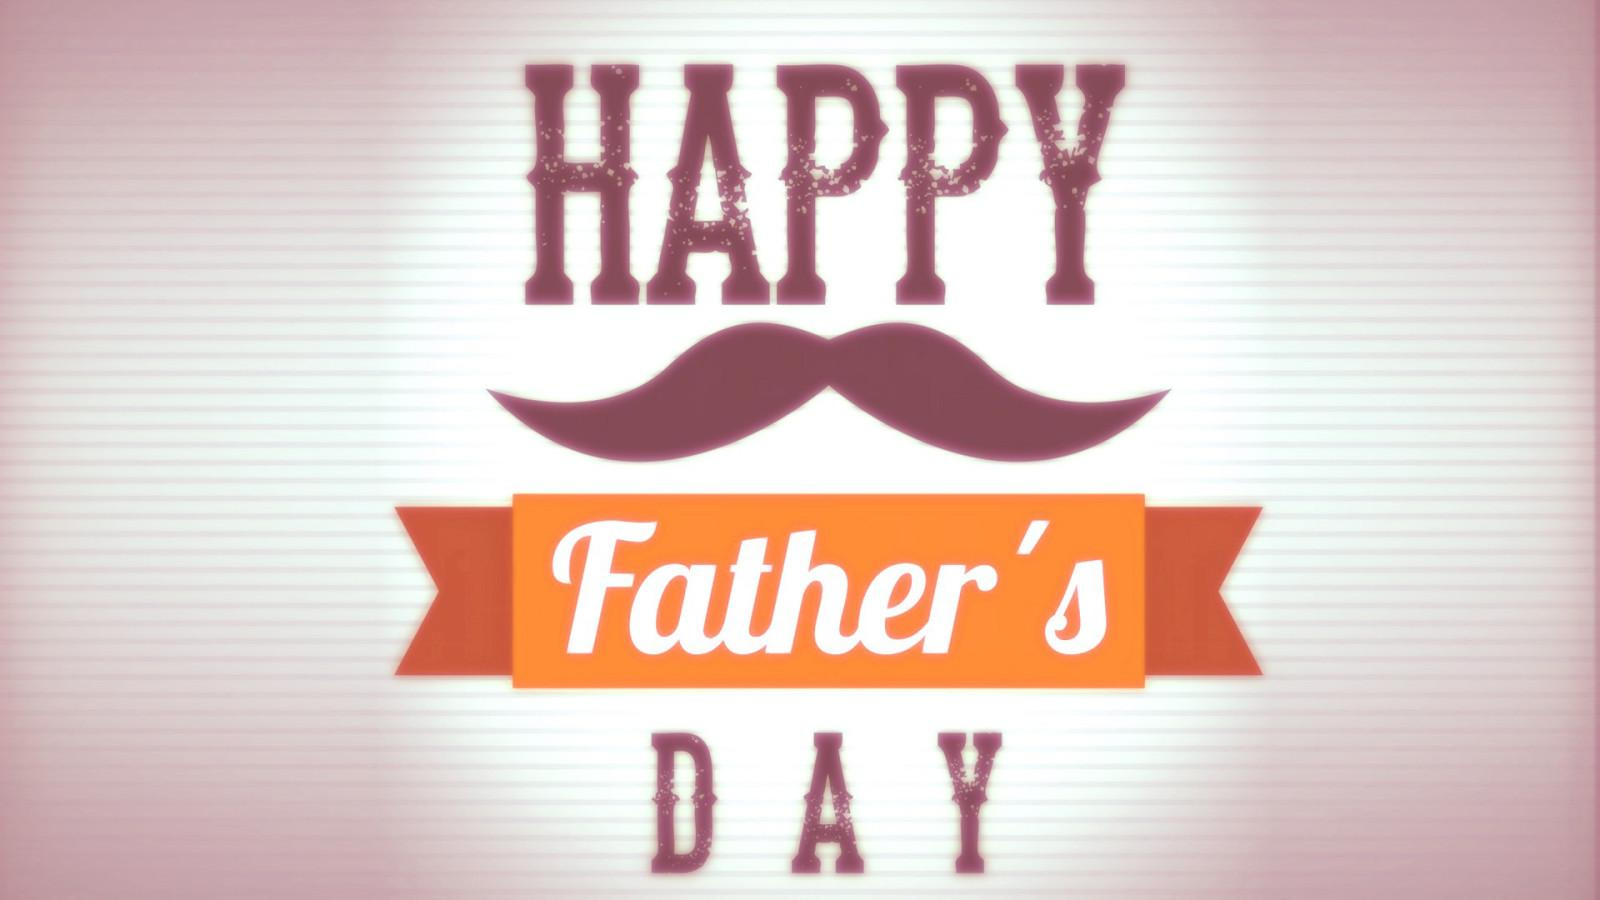 Happy Fathers Day 2018 Quotes Sayings Wishes Messages – AtulHost